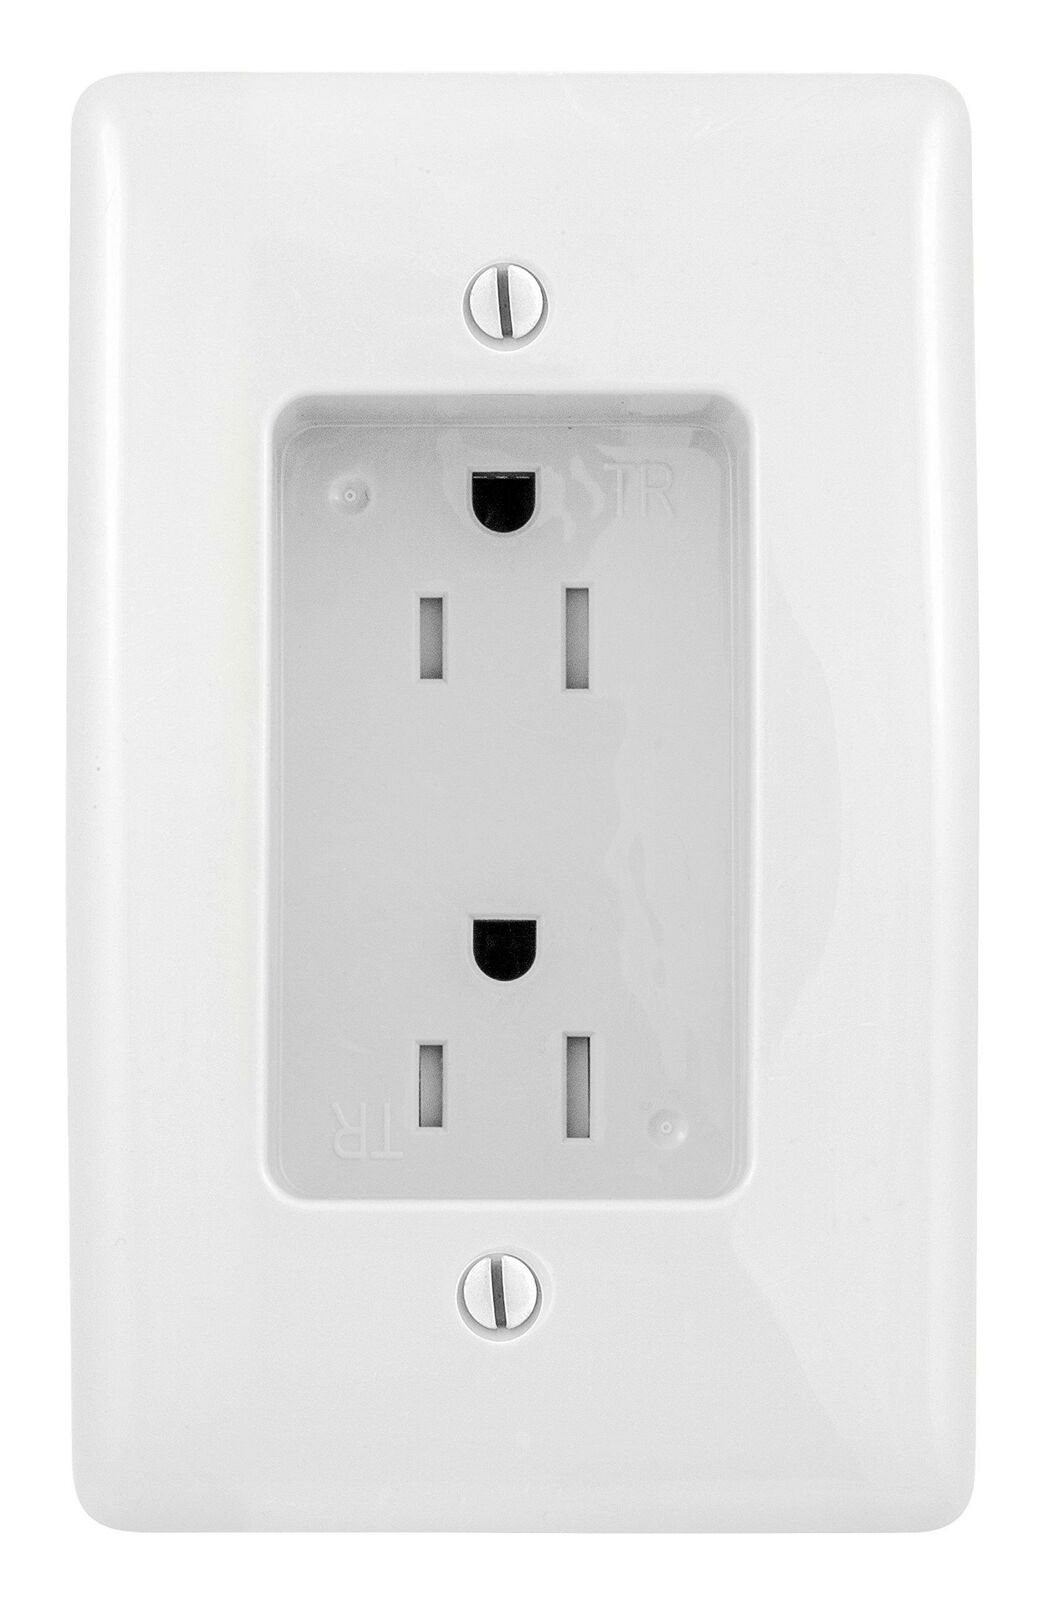 Bryant Electric Rr1510w Box Mount 1 Gang Recessed Tv Connection Outlet Plate Wit Electrical Outlets Receptacles Home Garden Worldenergy Ae